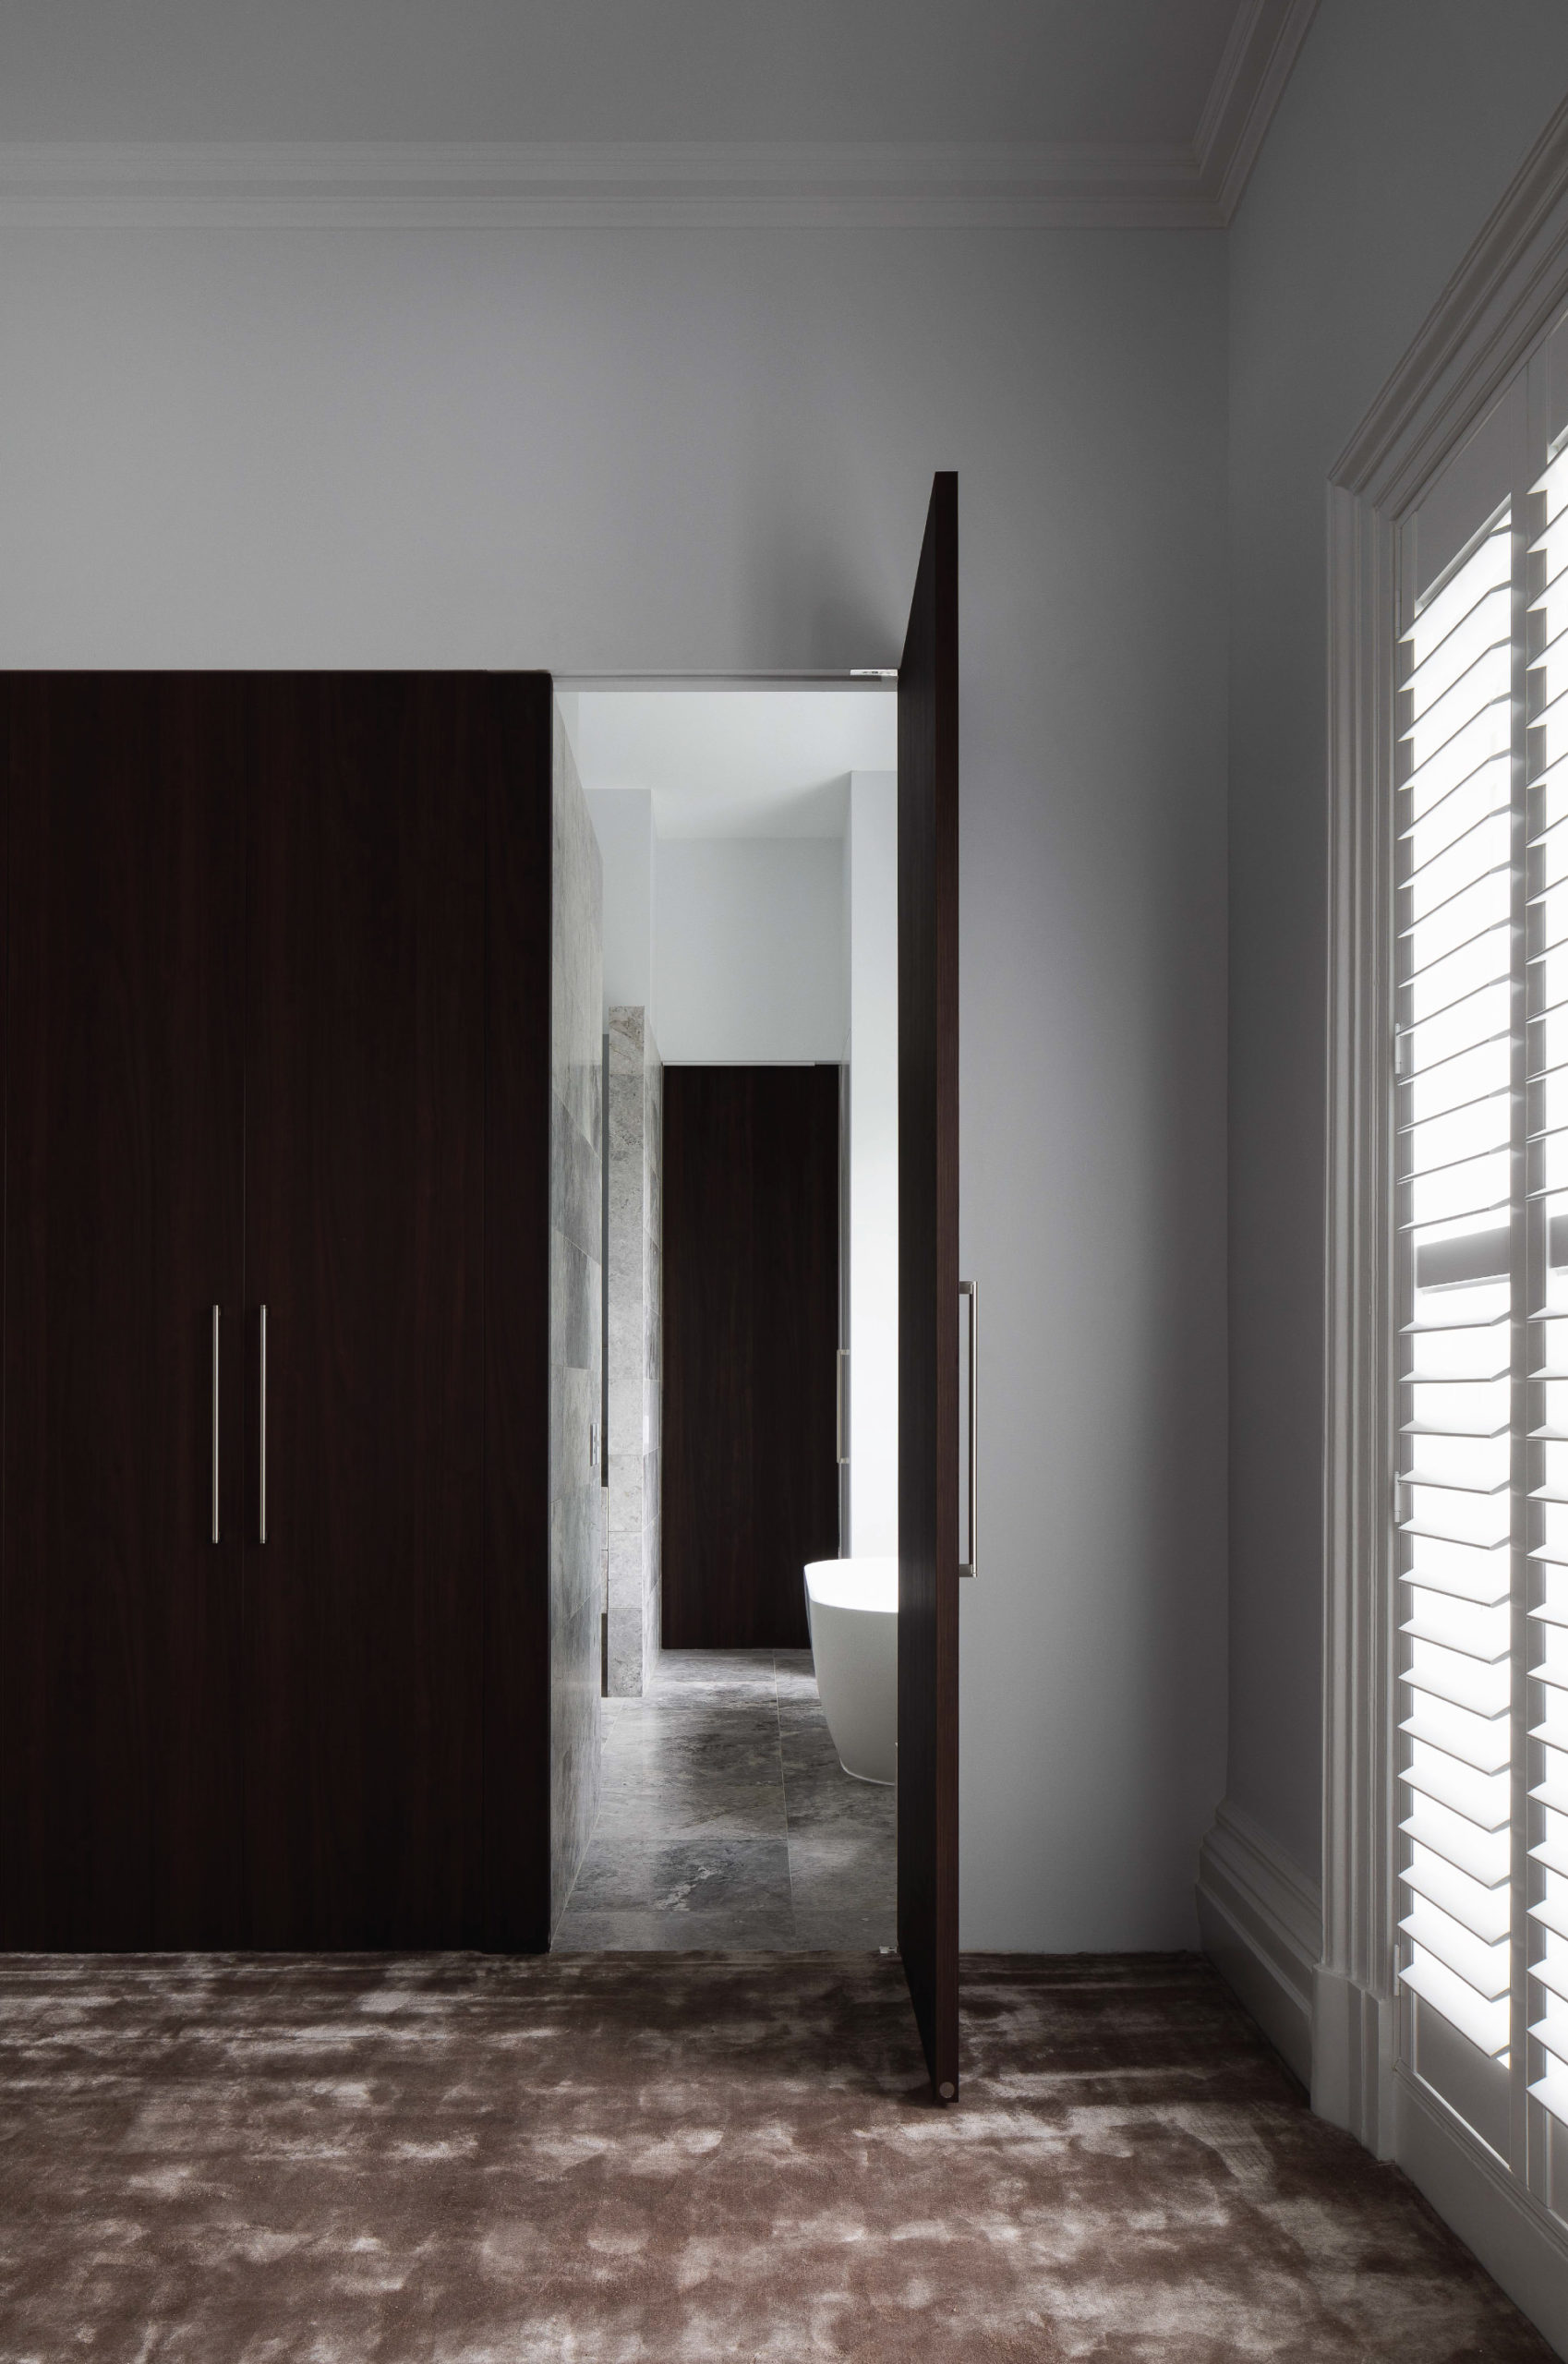 Cera Stribley Architecture Interior Design Albert St interior bathroom door